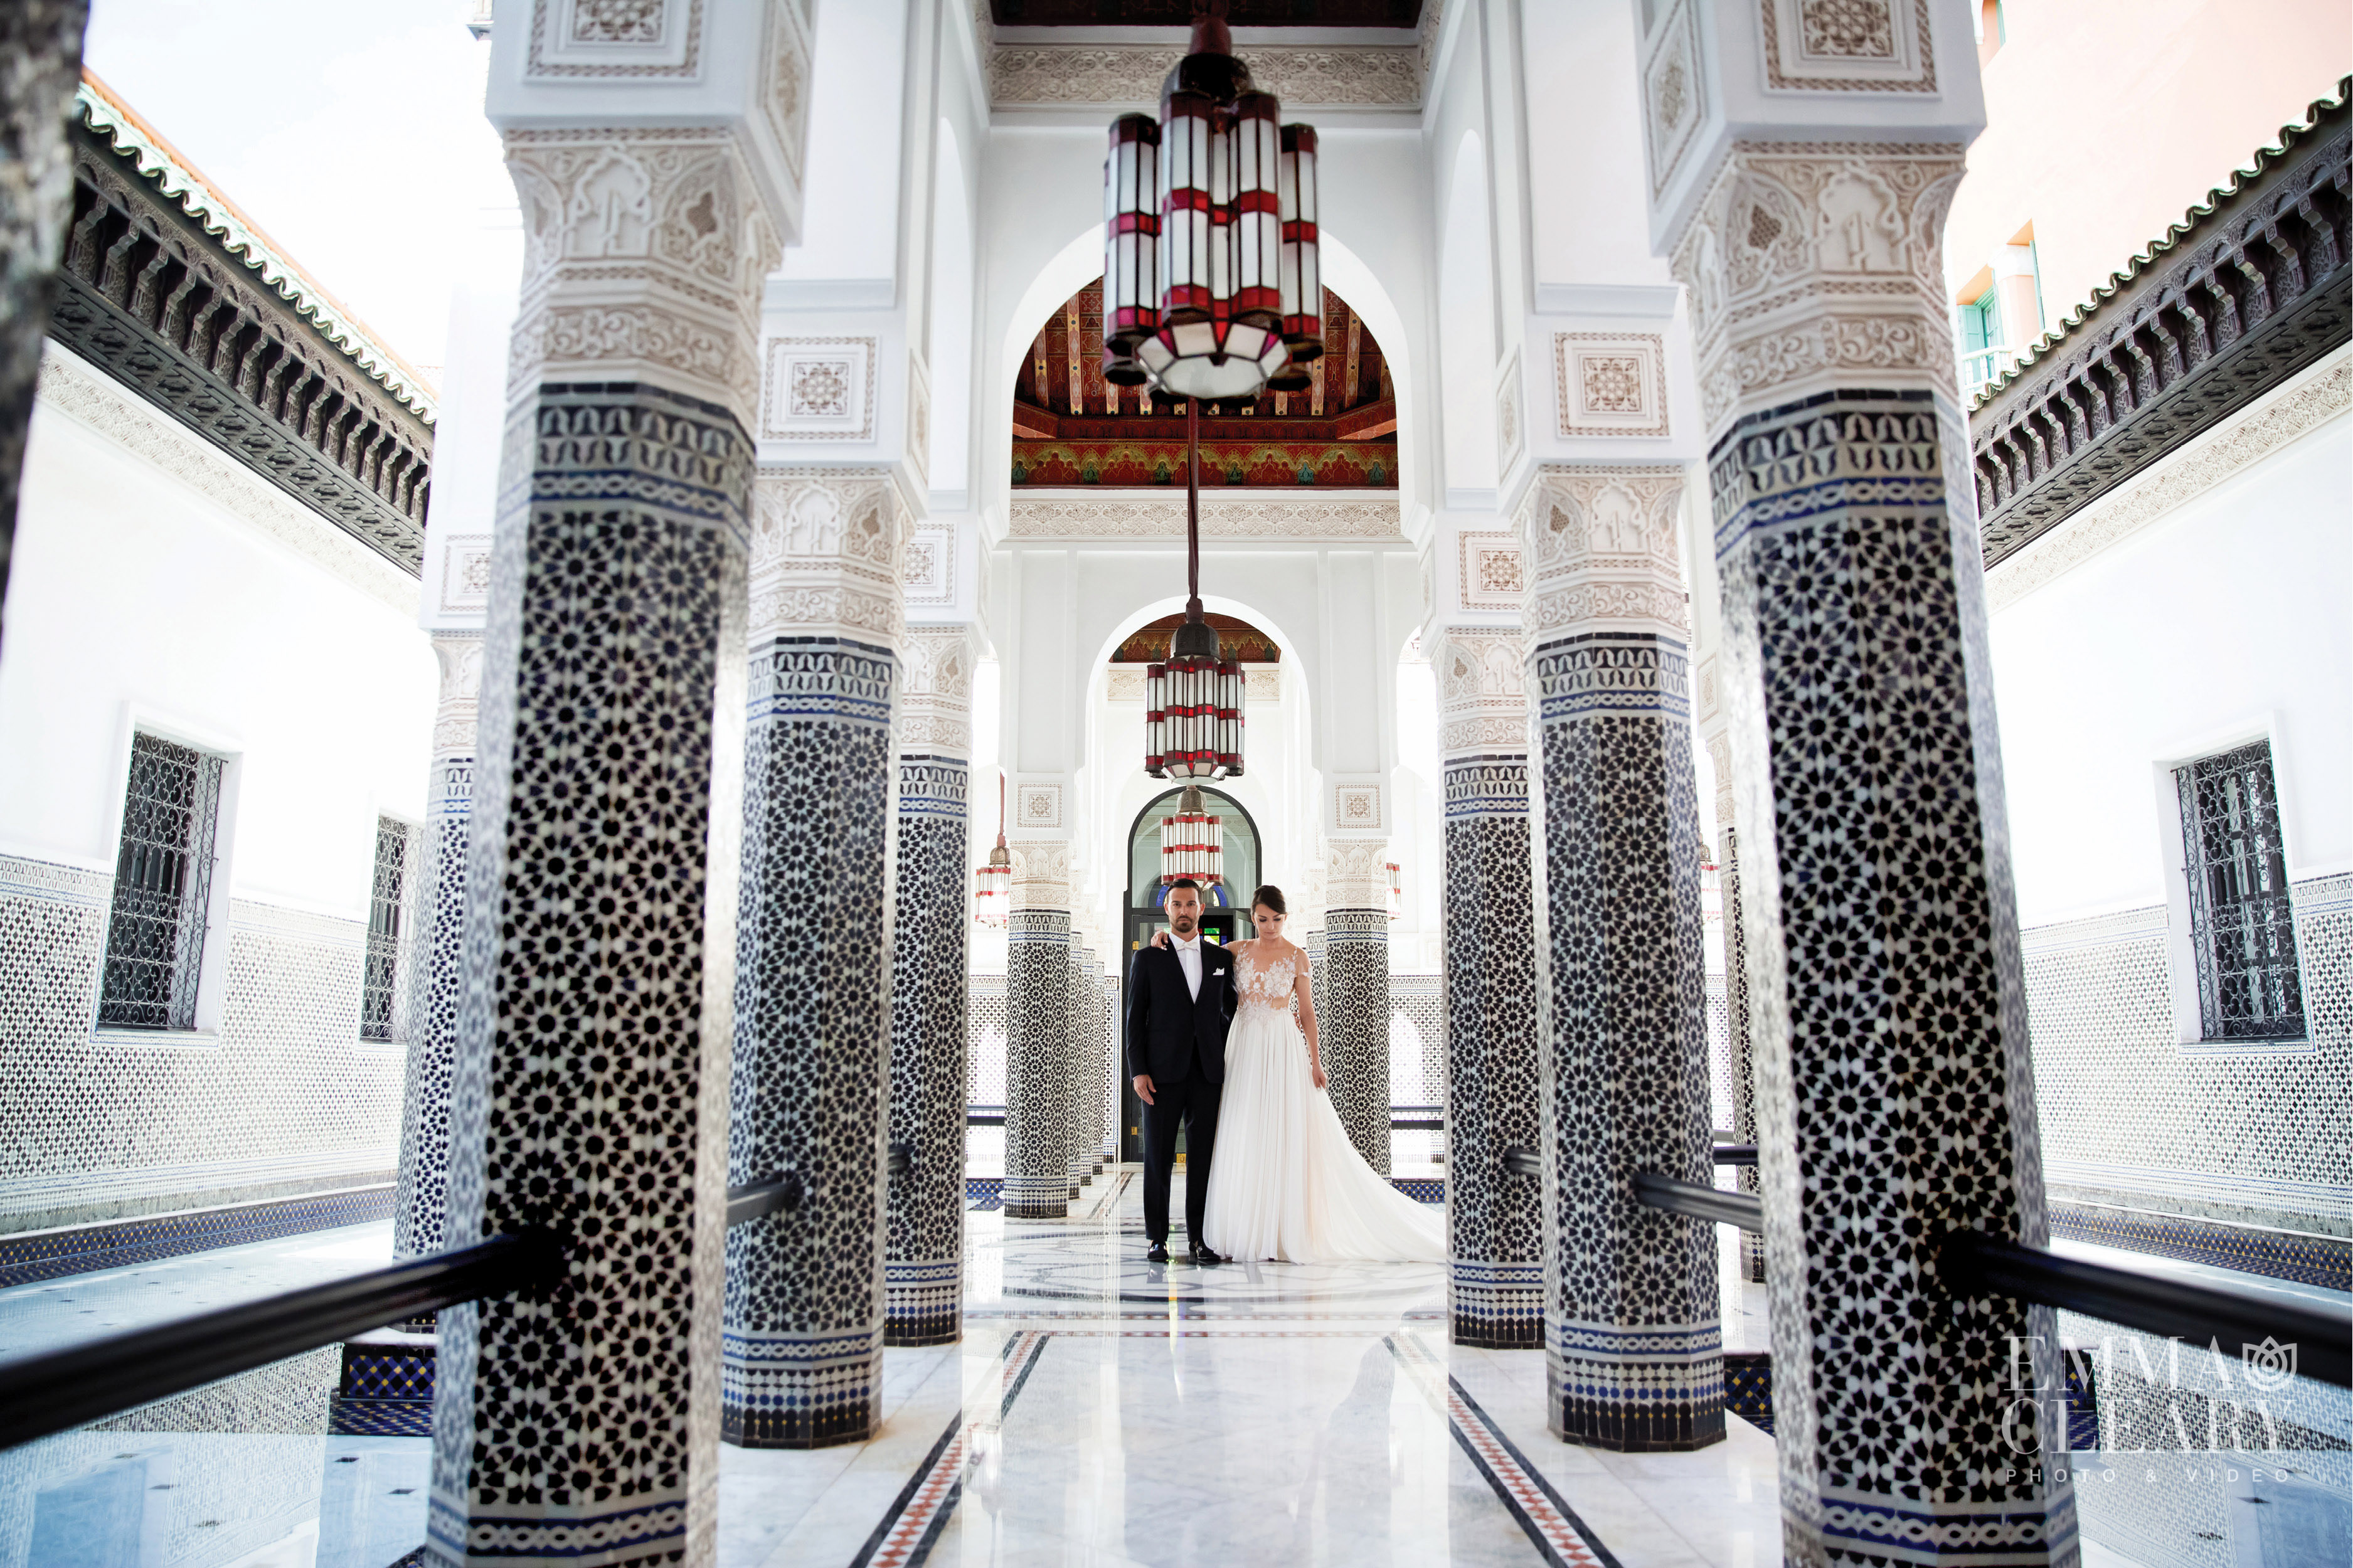 Emma_cleary_photography Destination Wedding Morrocco09